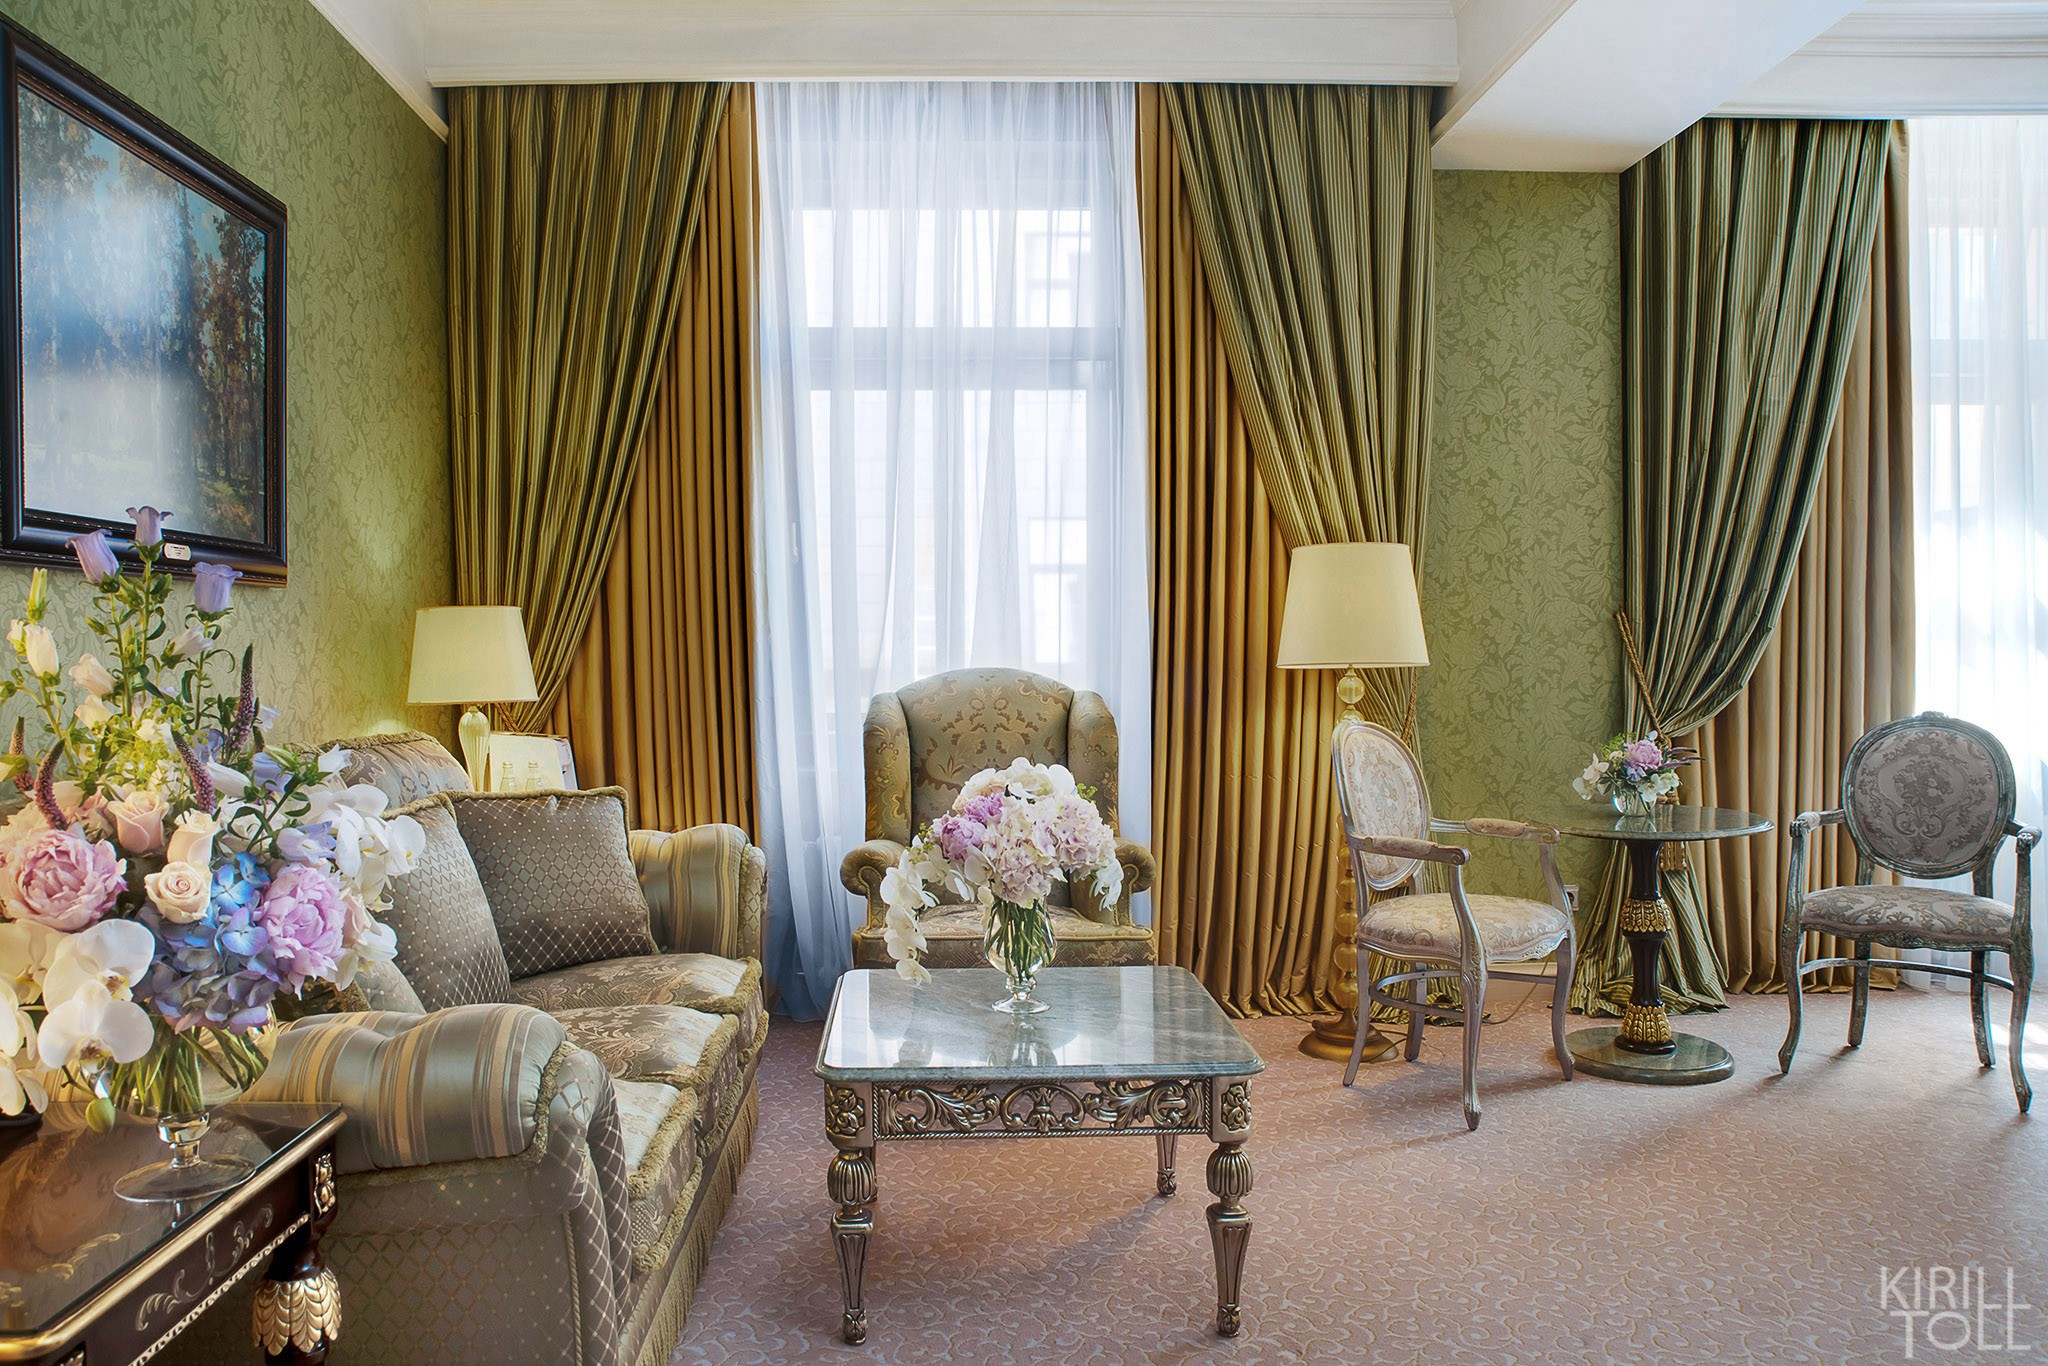 Front photos of hotel rooms. Photographer's work for the presentation of apartments